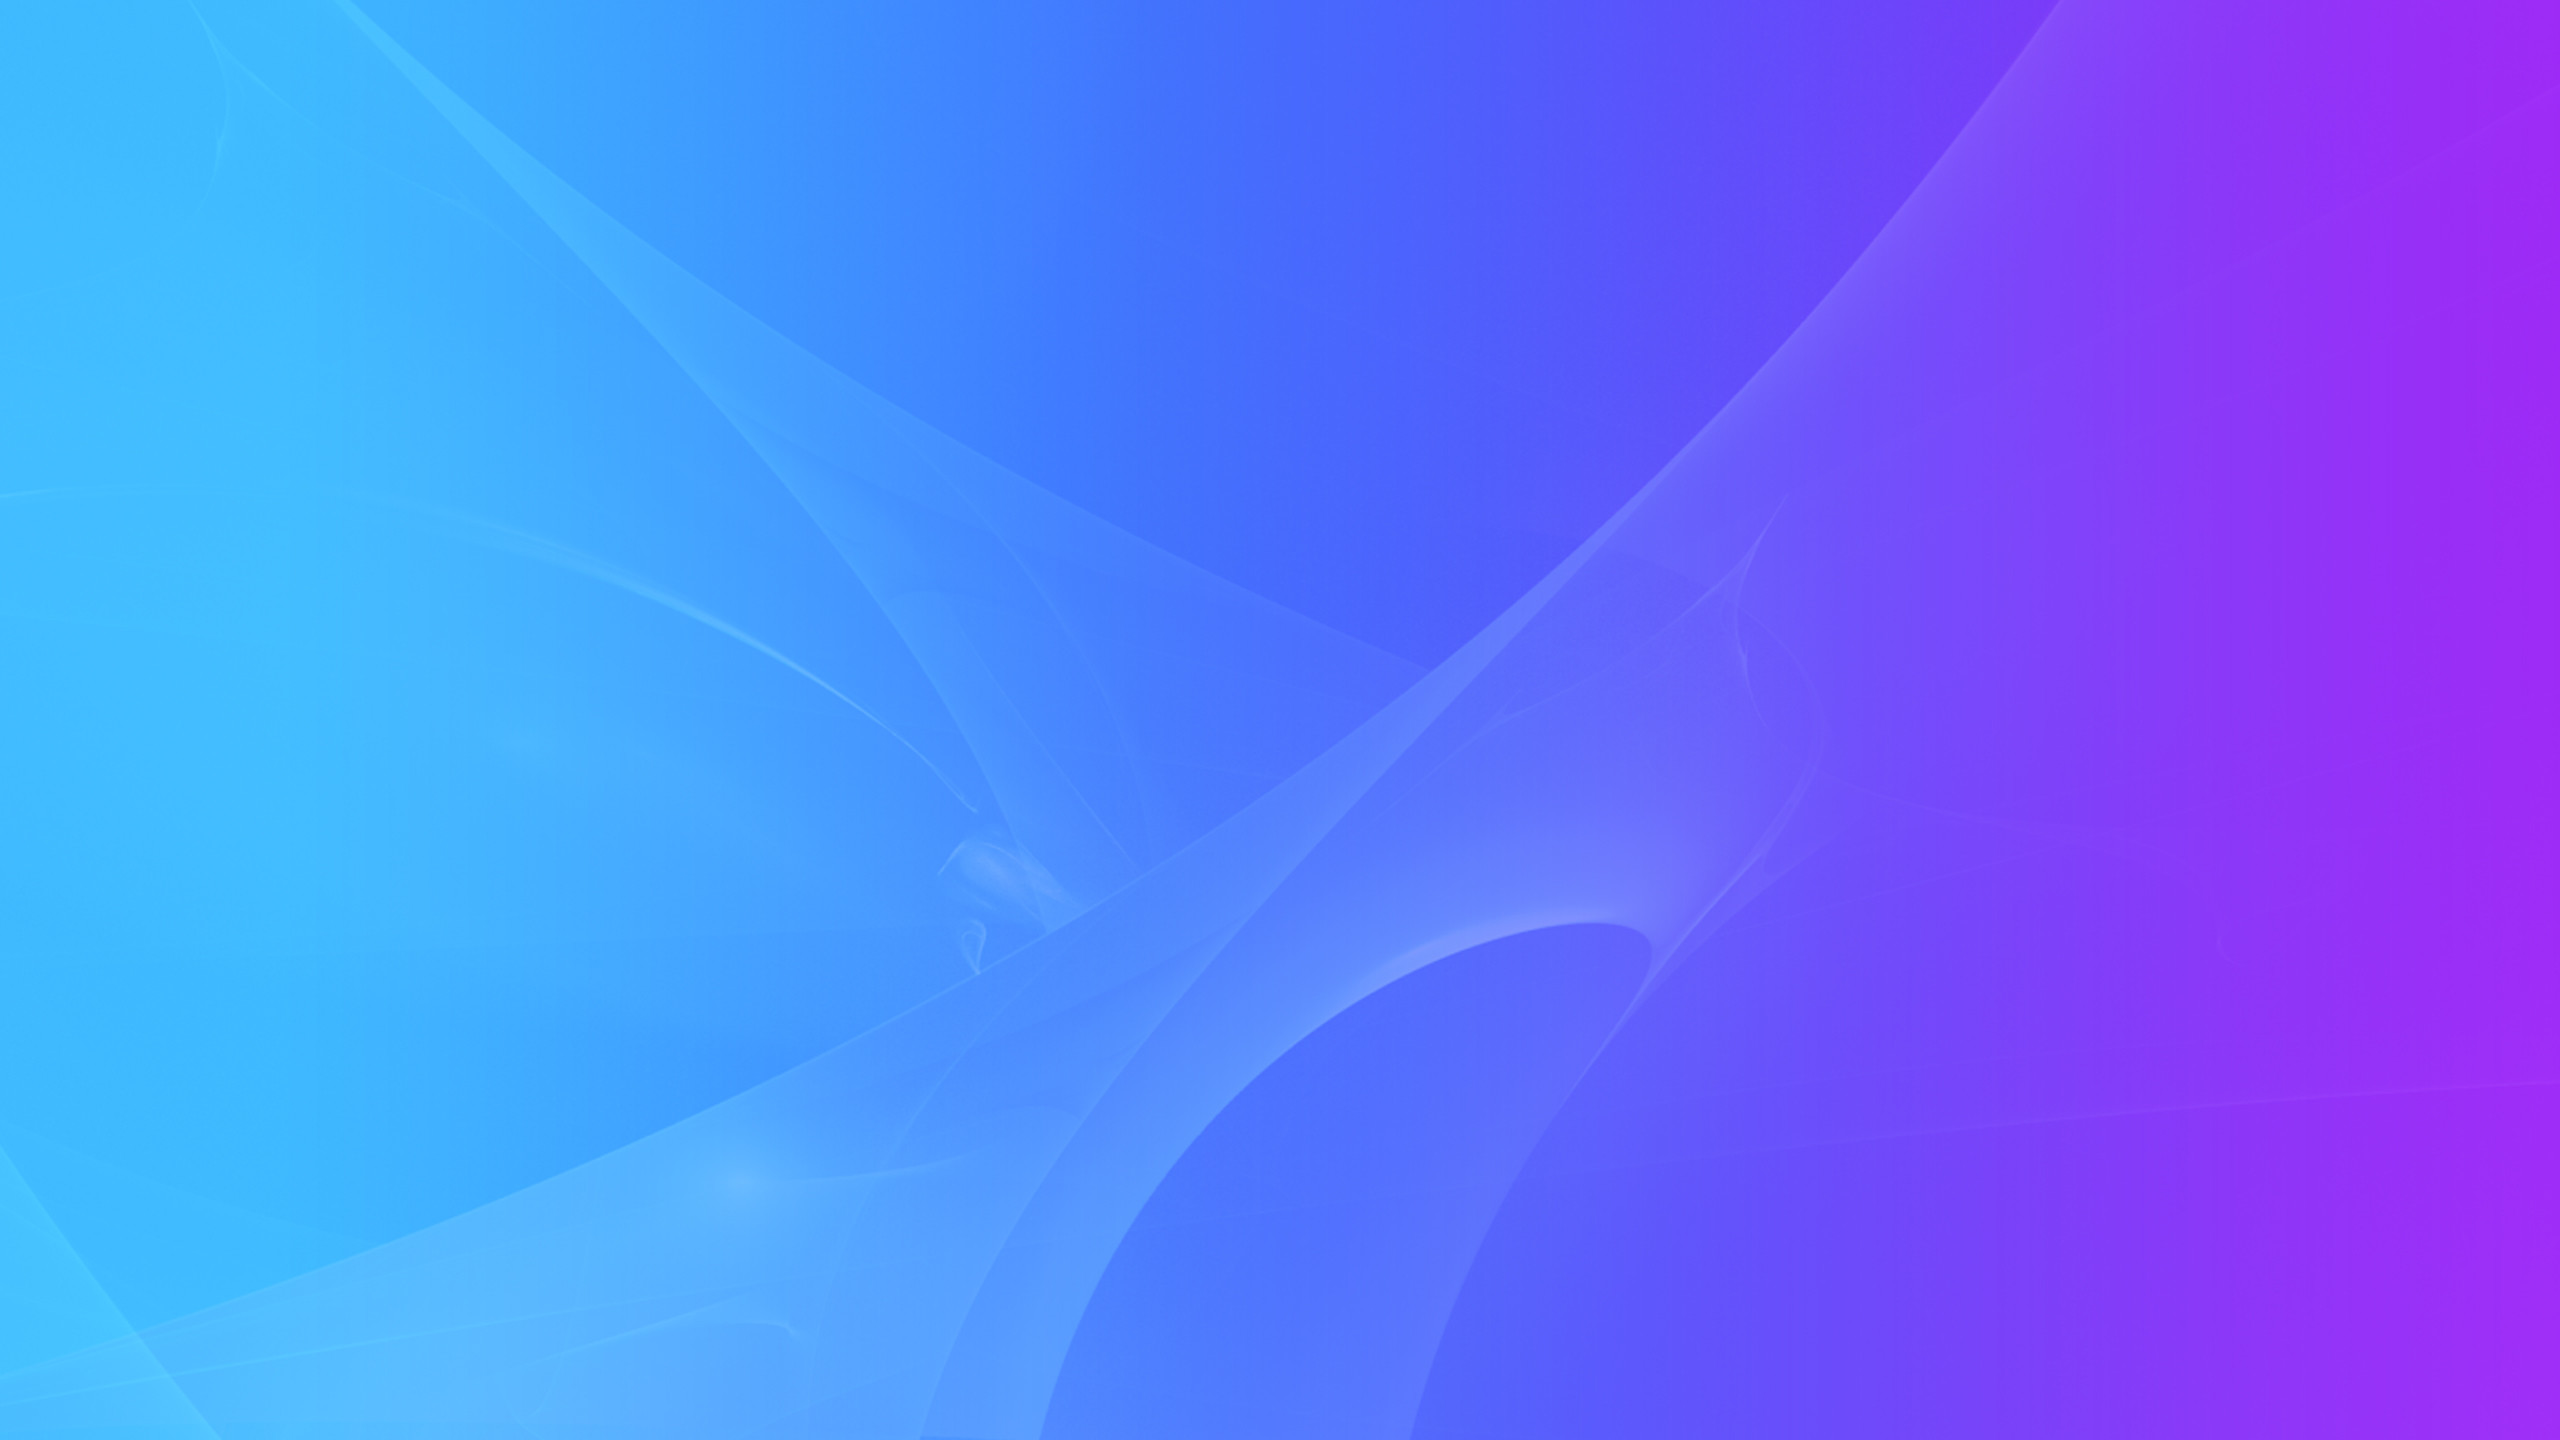 Res: 2560x1440, Tags: Blue abstract Purple